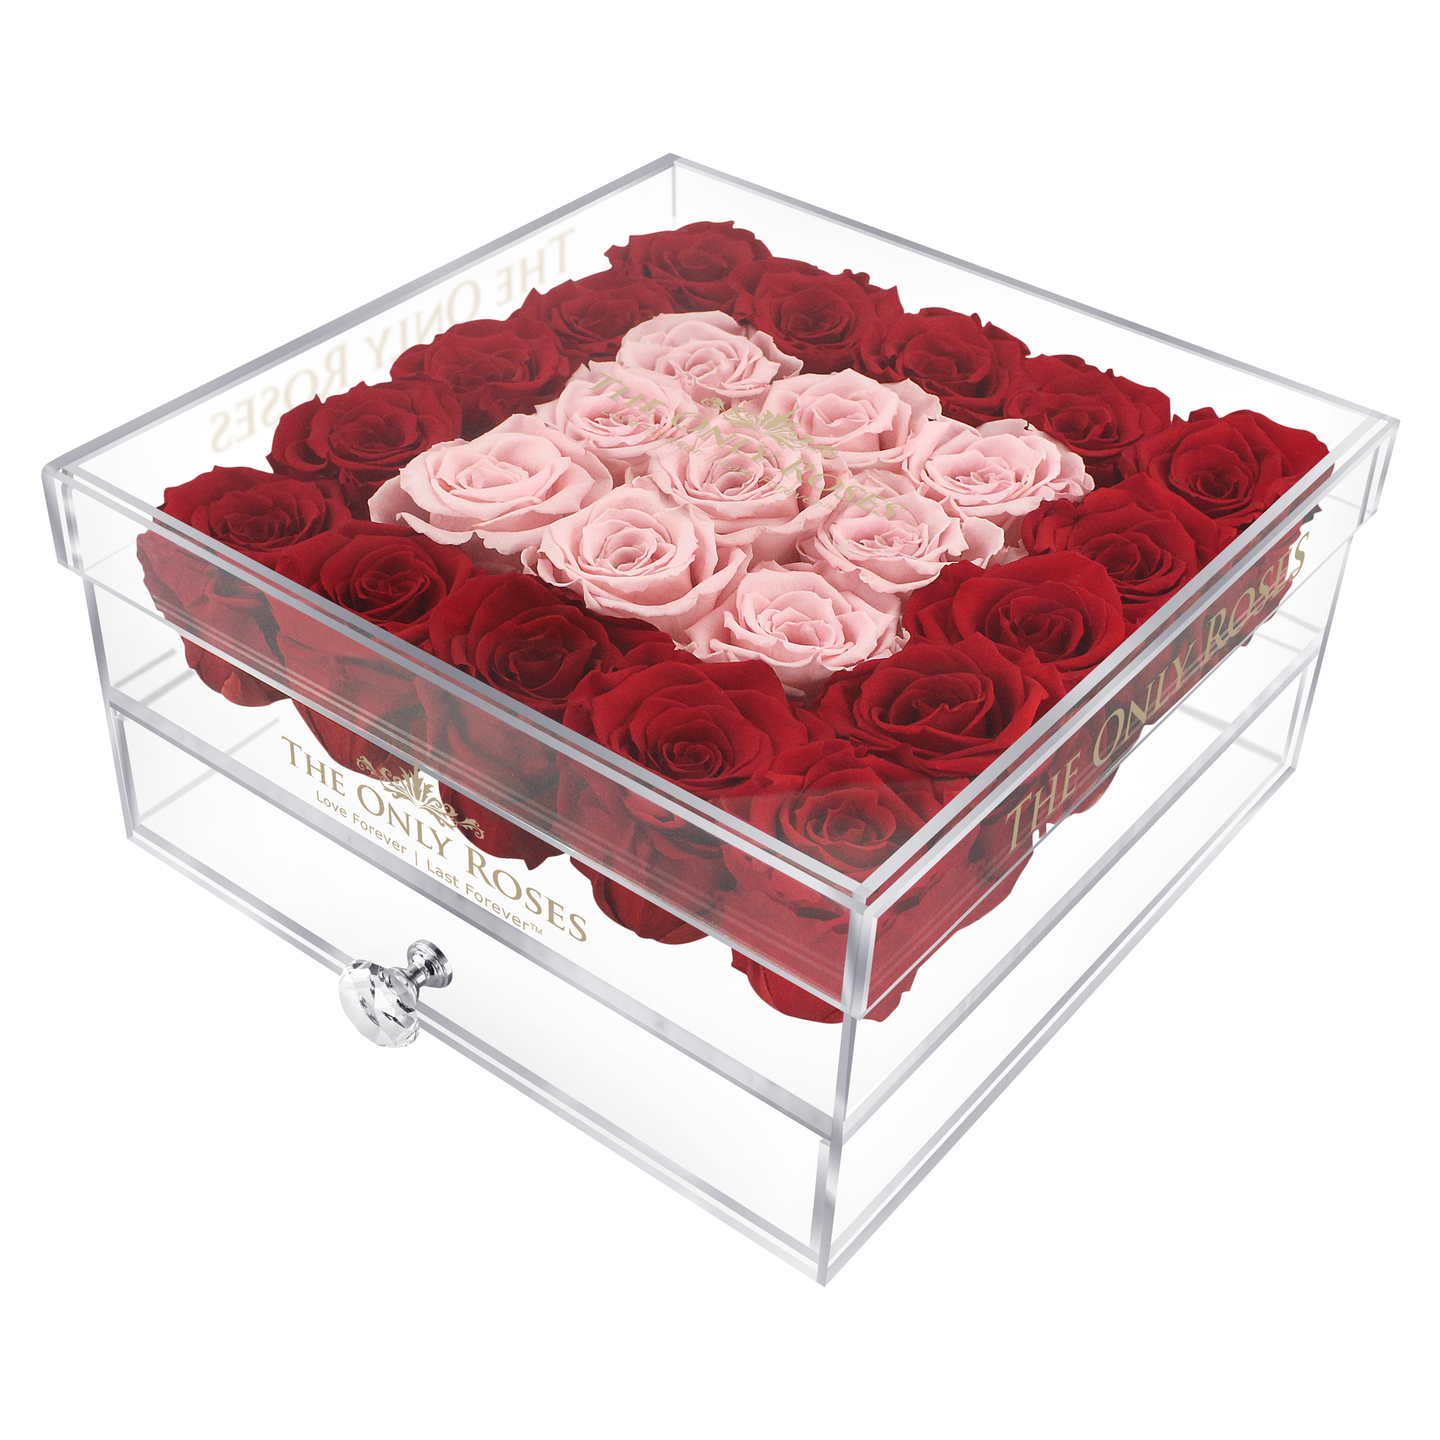 Red & Light Pink Preserved Roses | Large Acrylic Rose Box